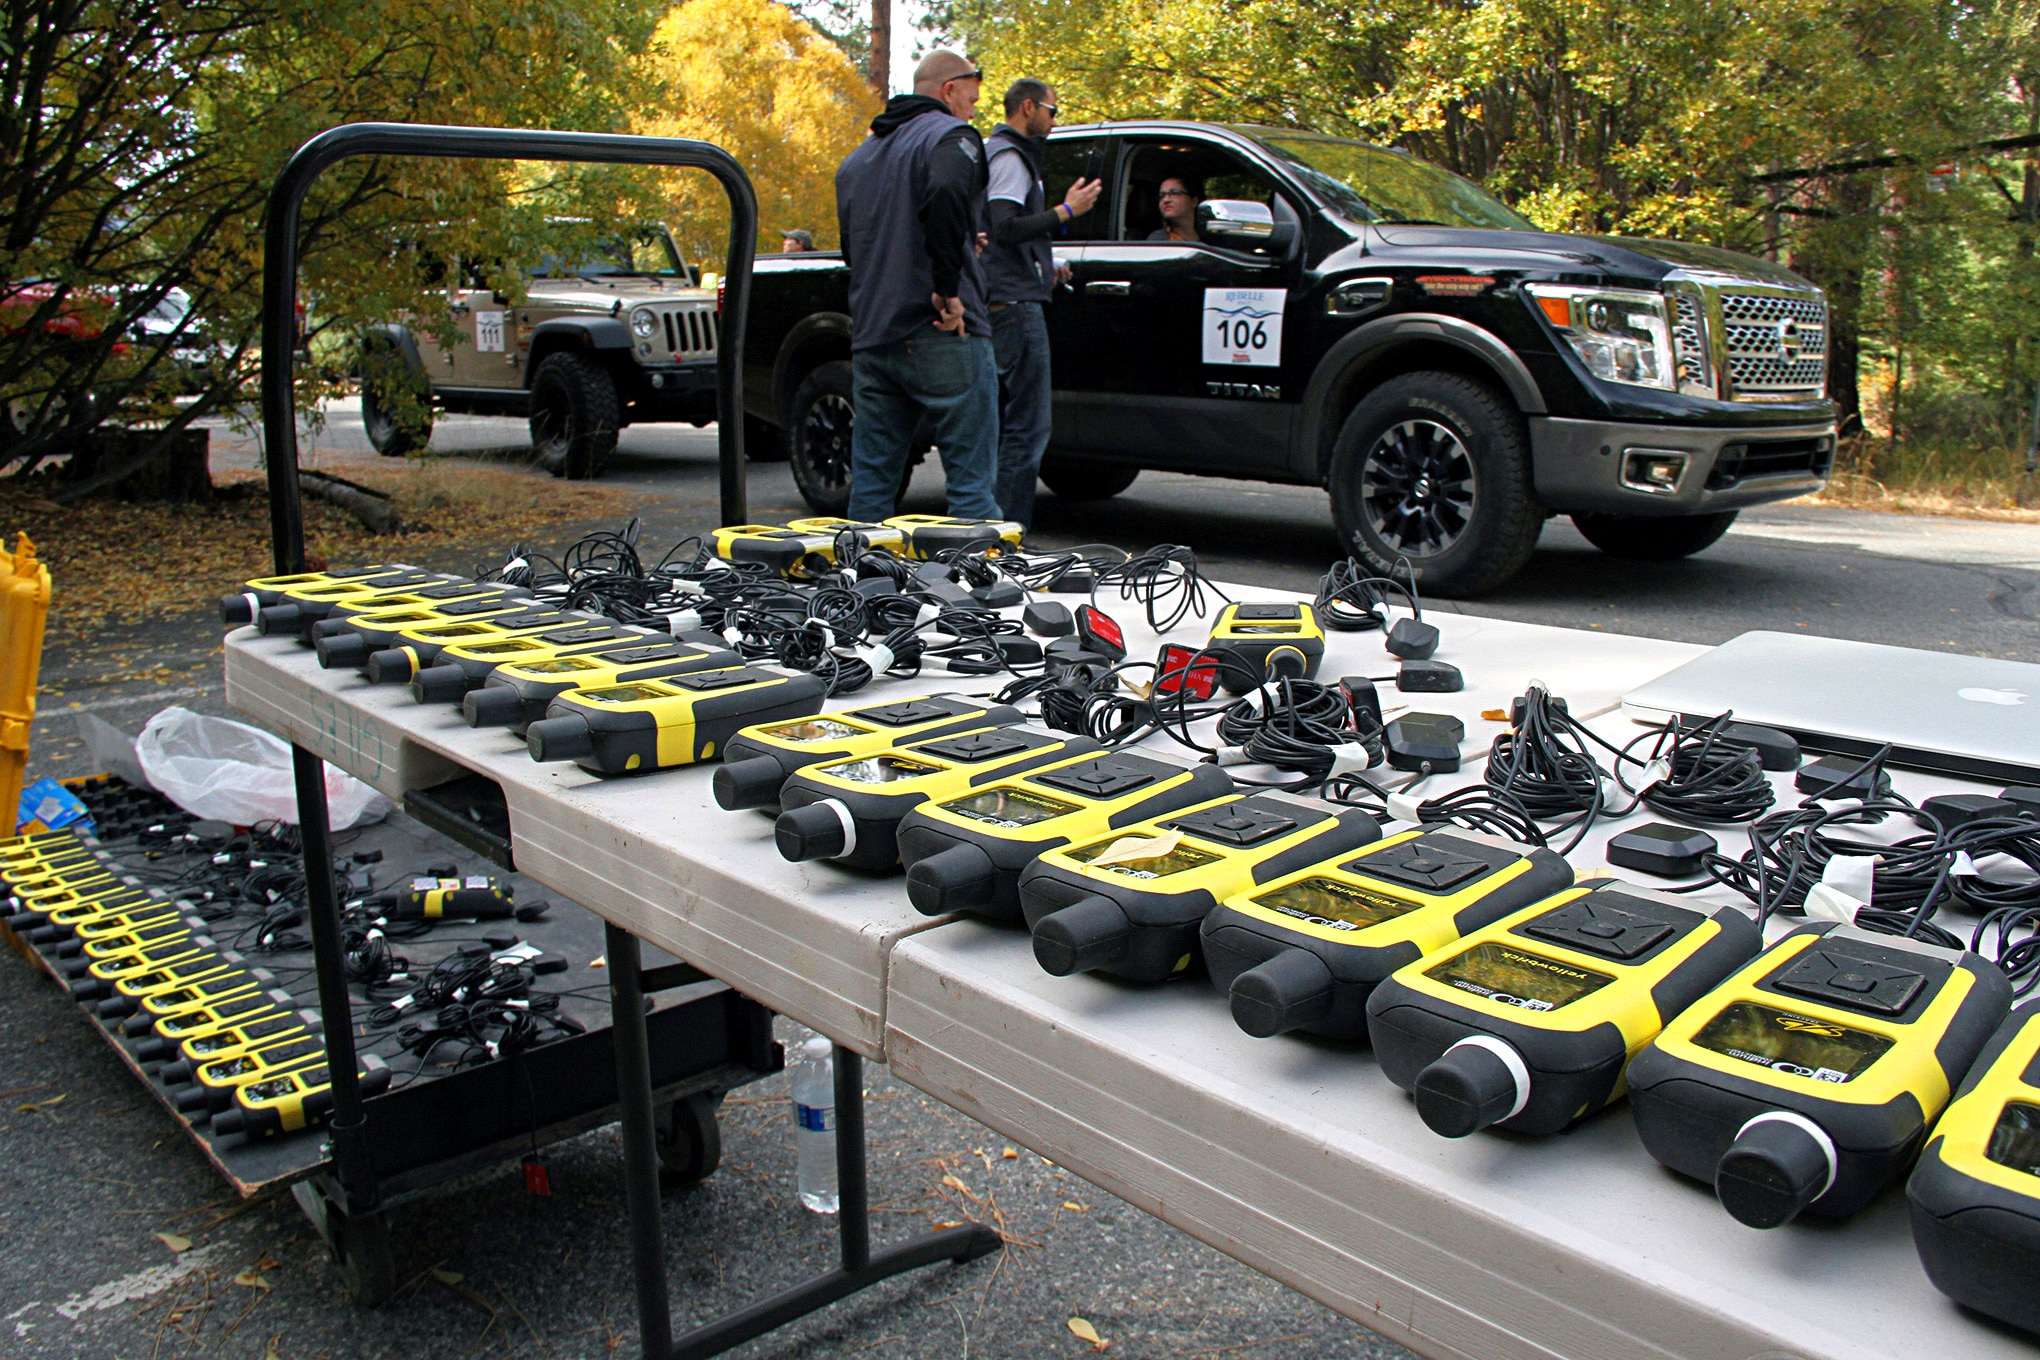 Vehicles went through a technical inspection to make sure they were safe. GPS devices were sealed. The rally tracker was the only electronic device the competitors were allowed to use.